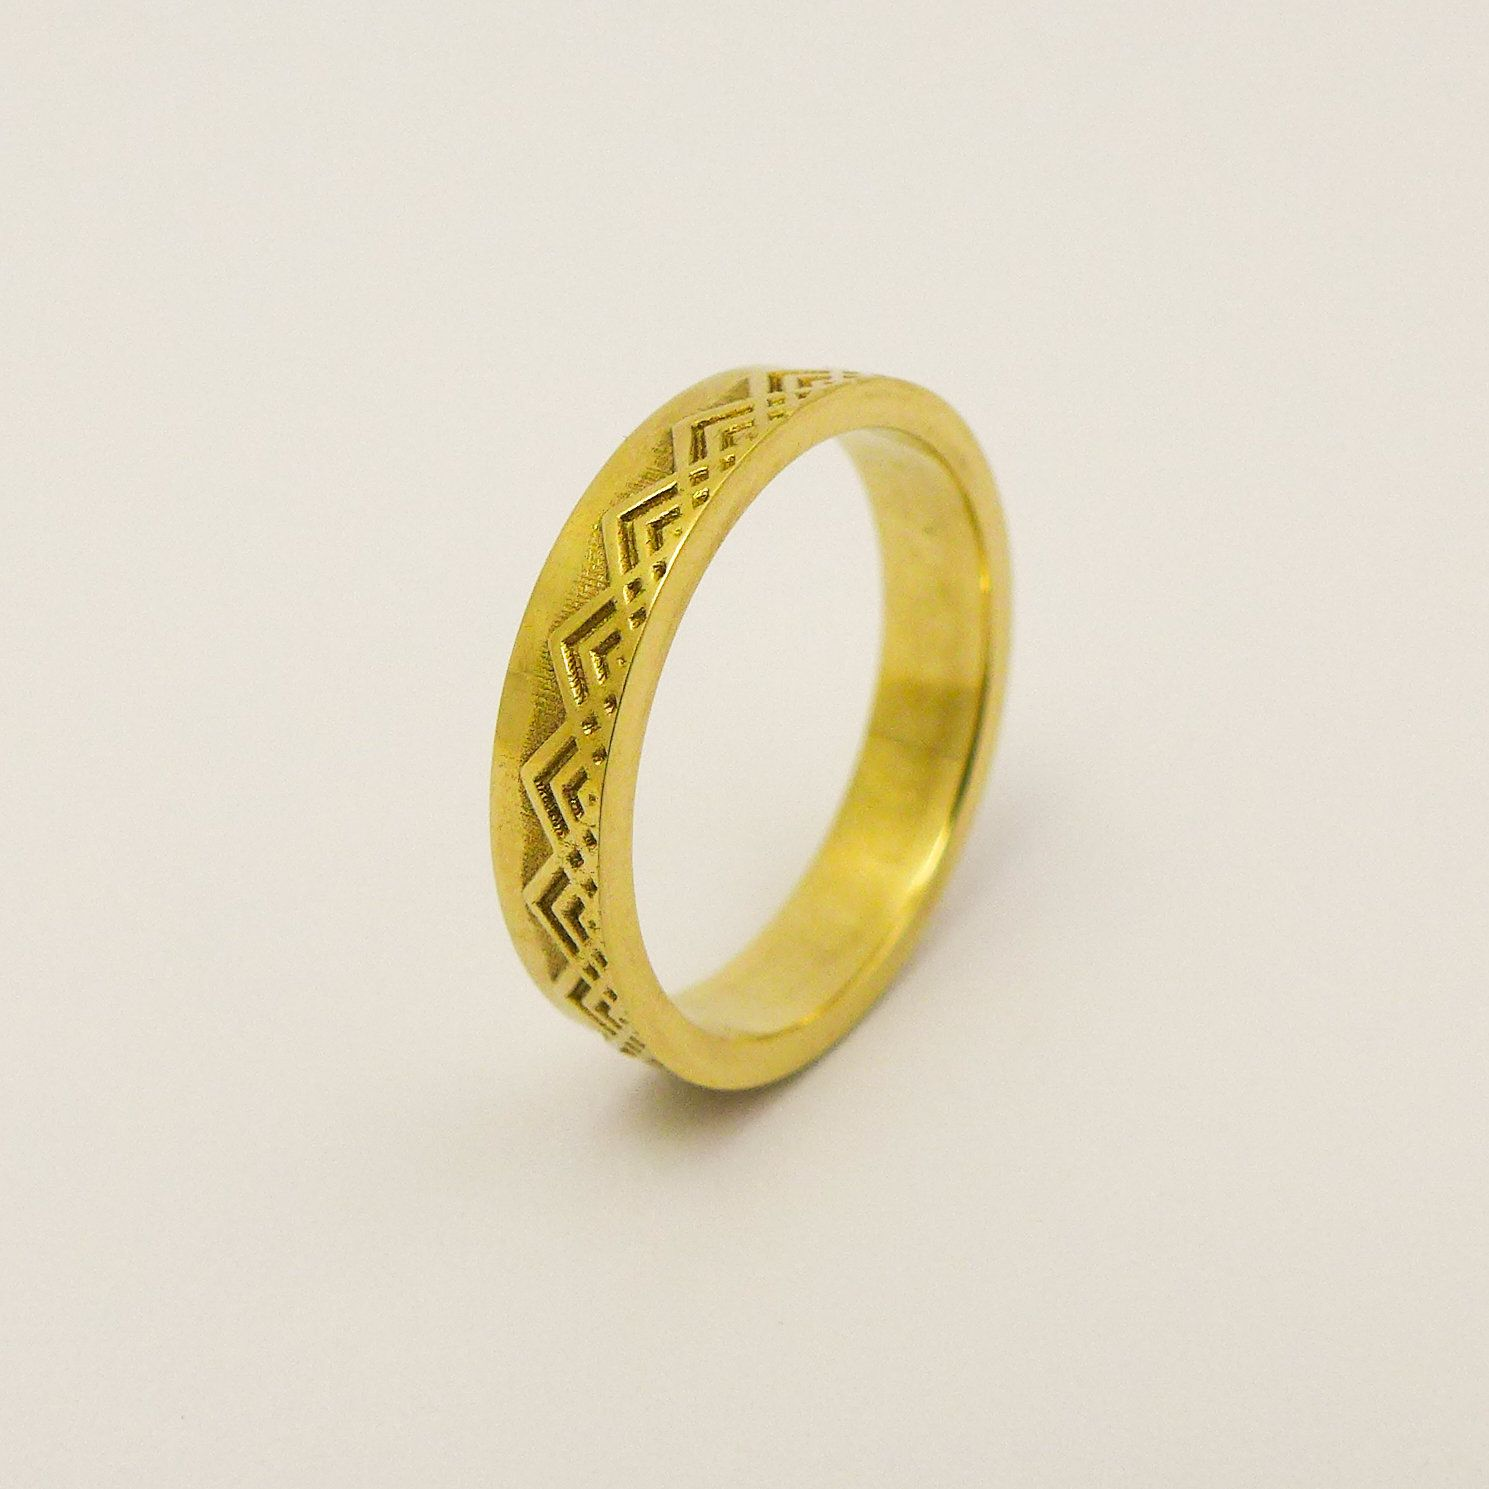 Wide Wedding Band, Patterned Wedding Band for Men and